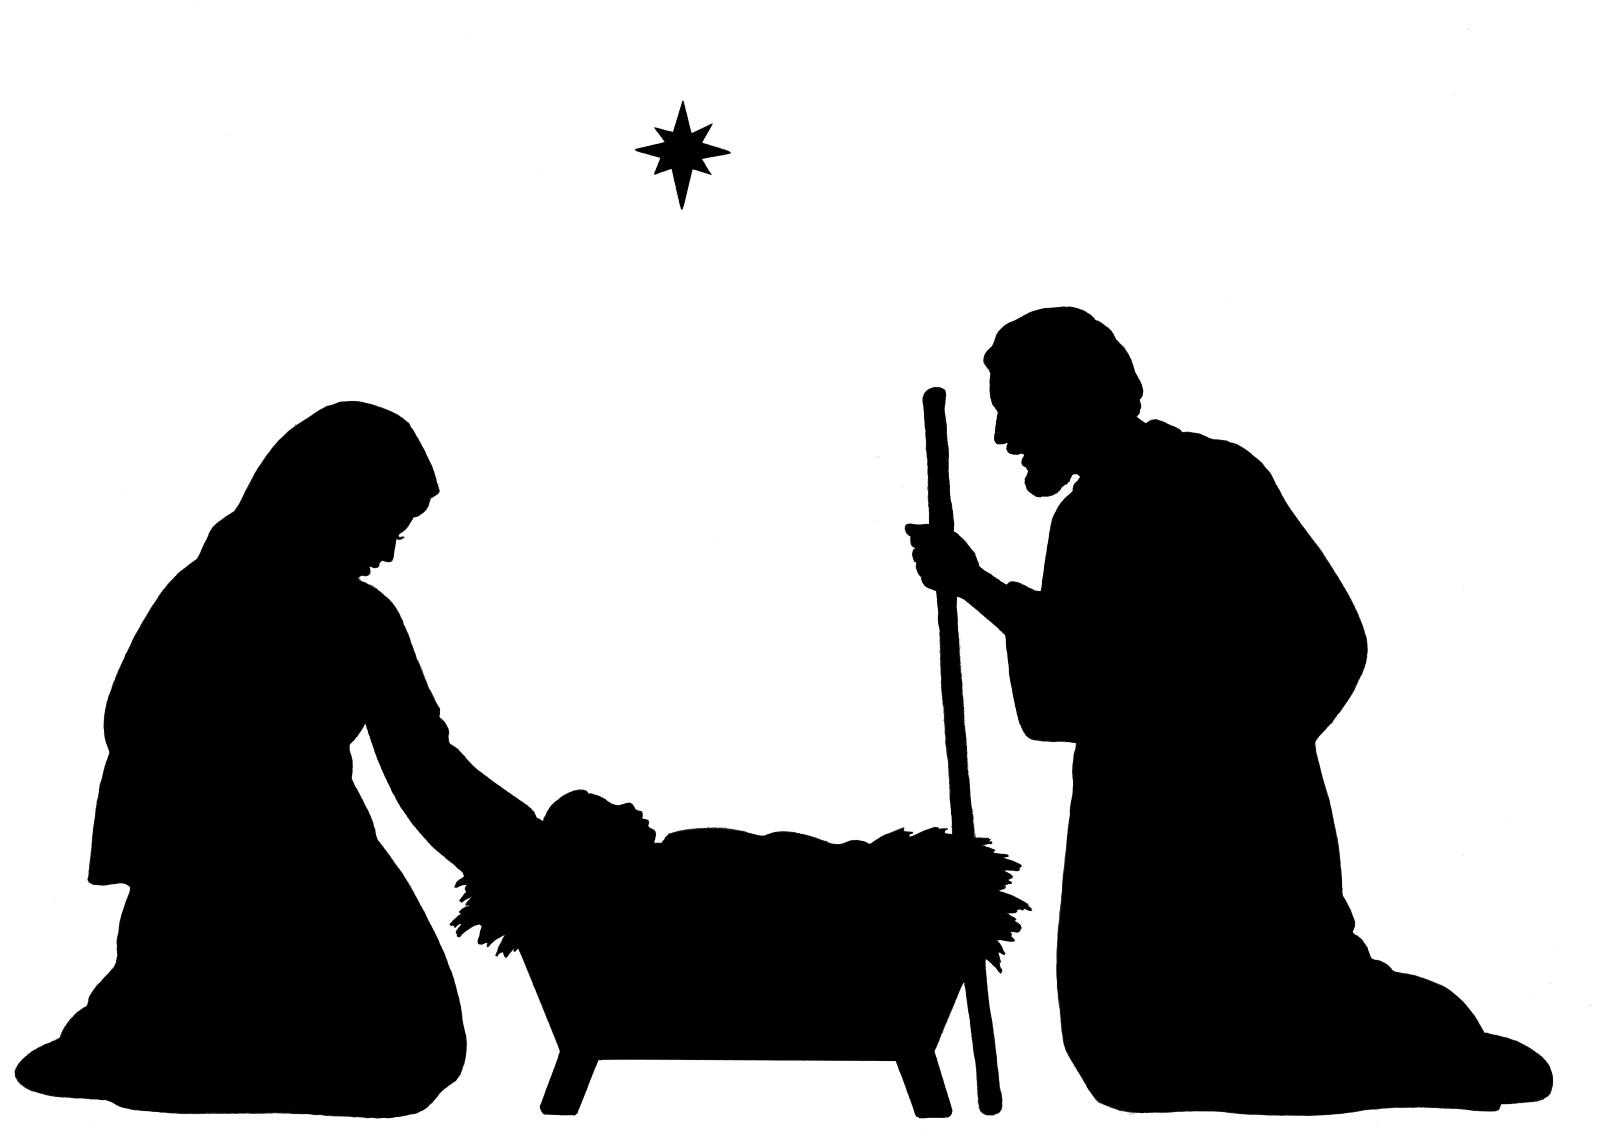 Silhouette Of The Nativity.